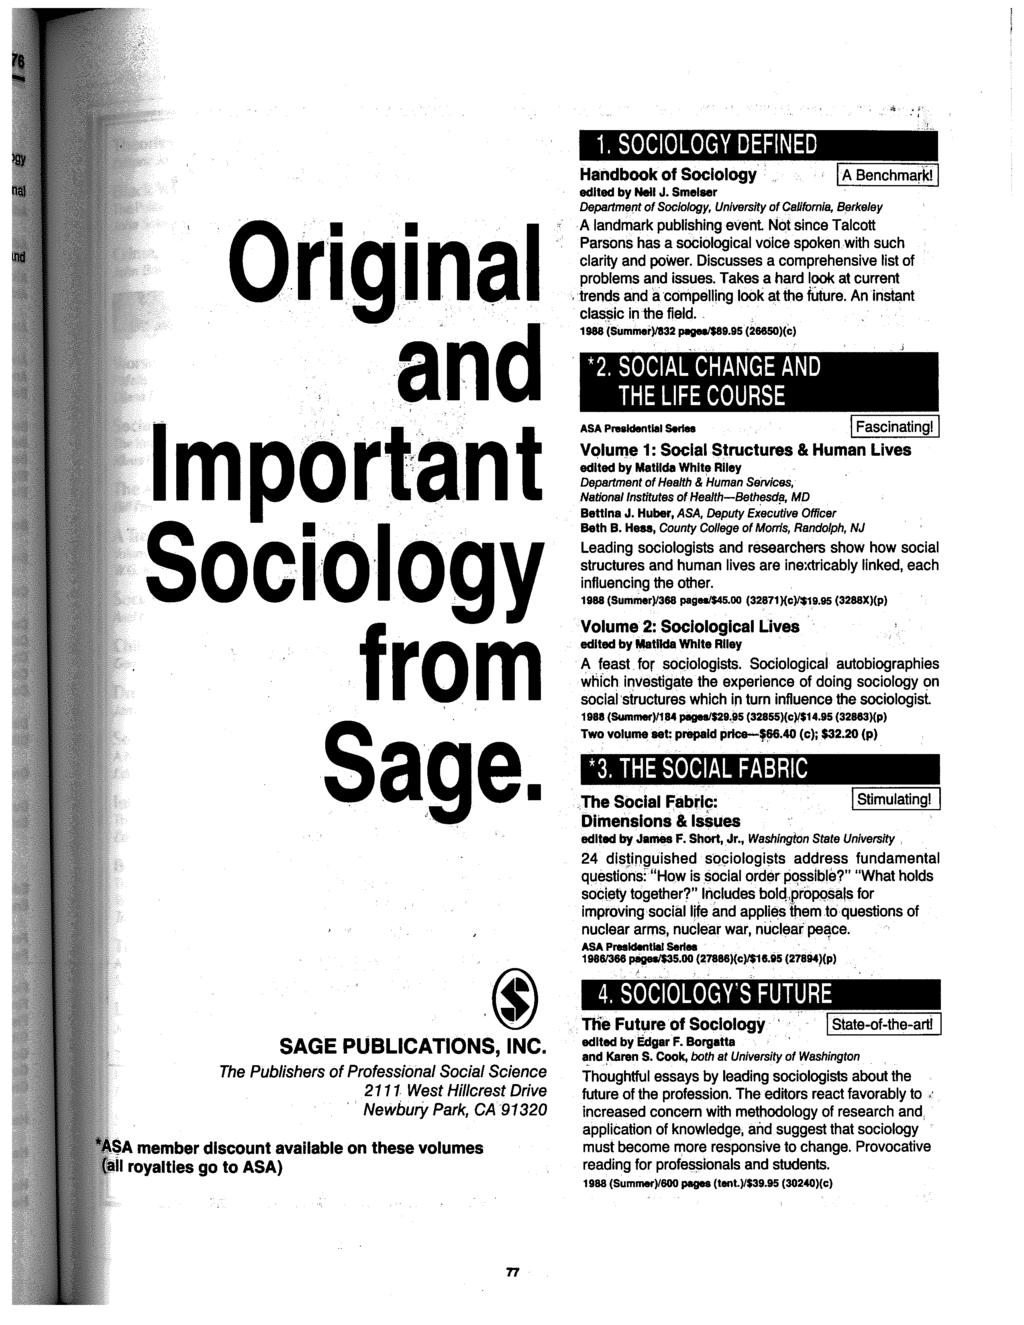 Original and ~ ' Important Soci:ology from Sage. SAGE PUBLICATIONS, INC.